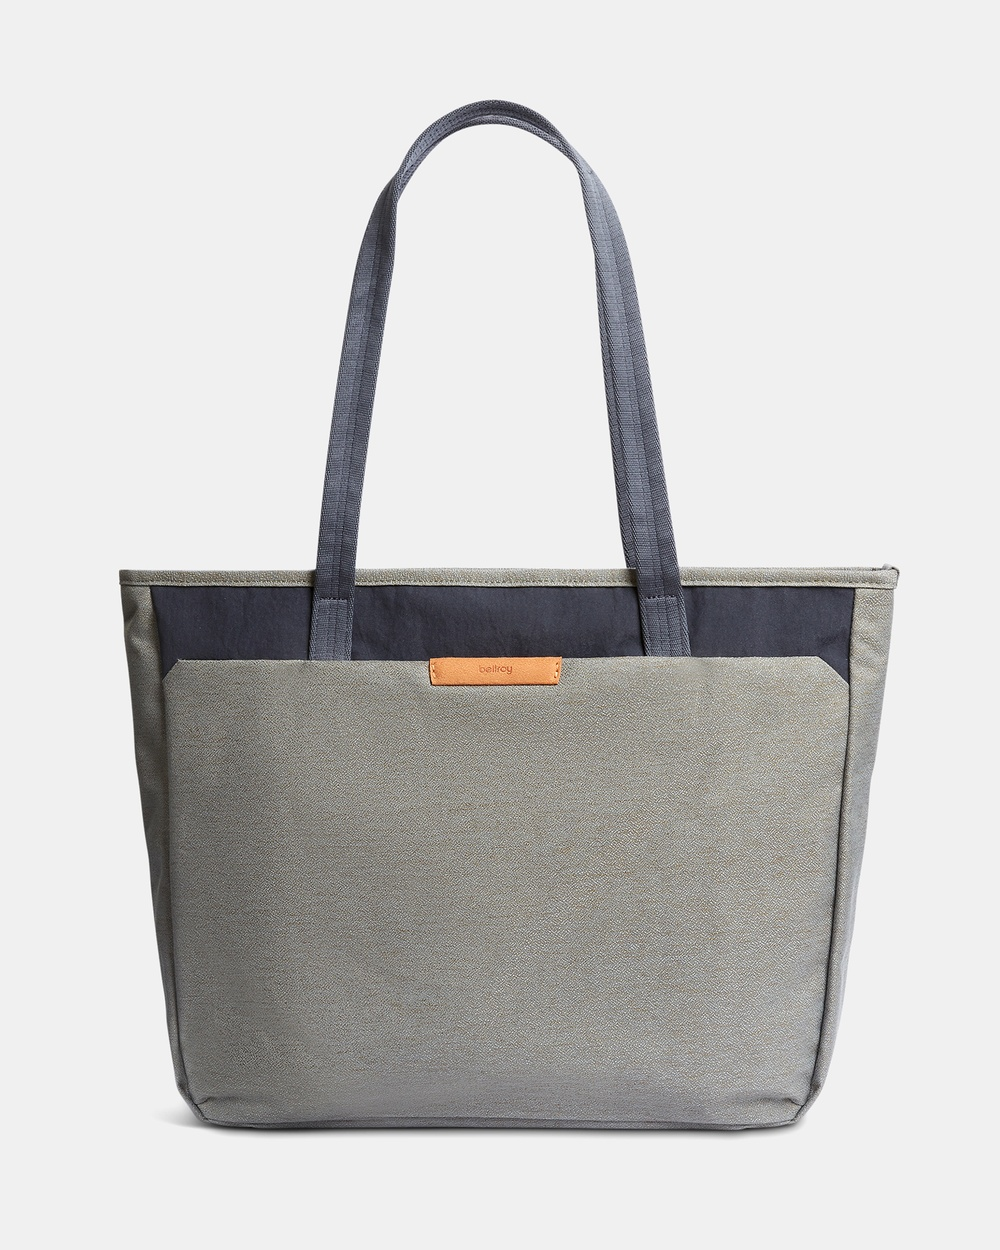 Bellroy Tokyo Tote Second Edition Bags Grey